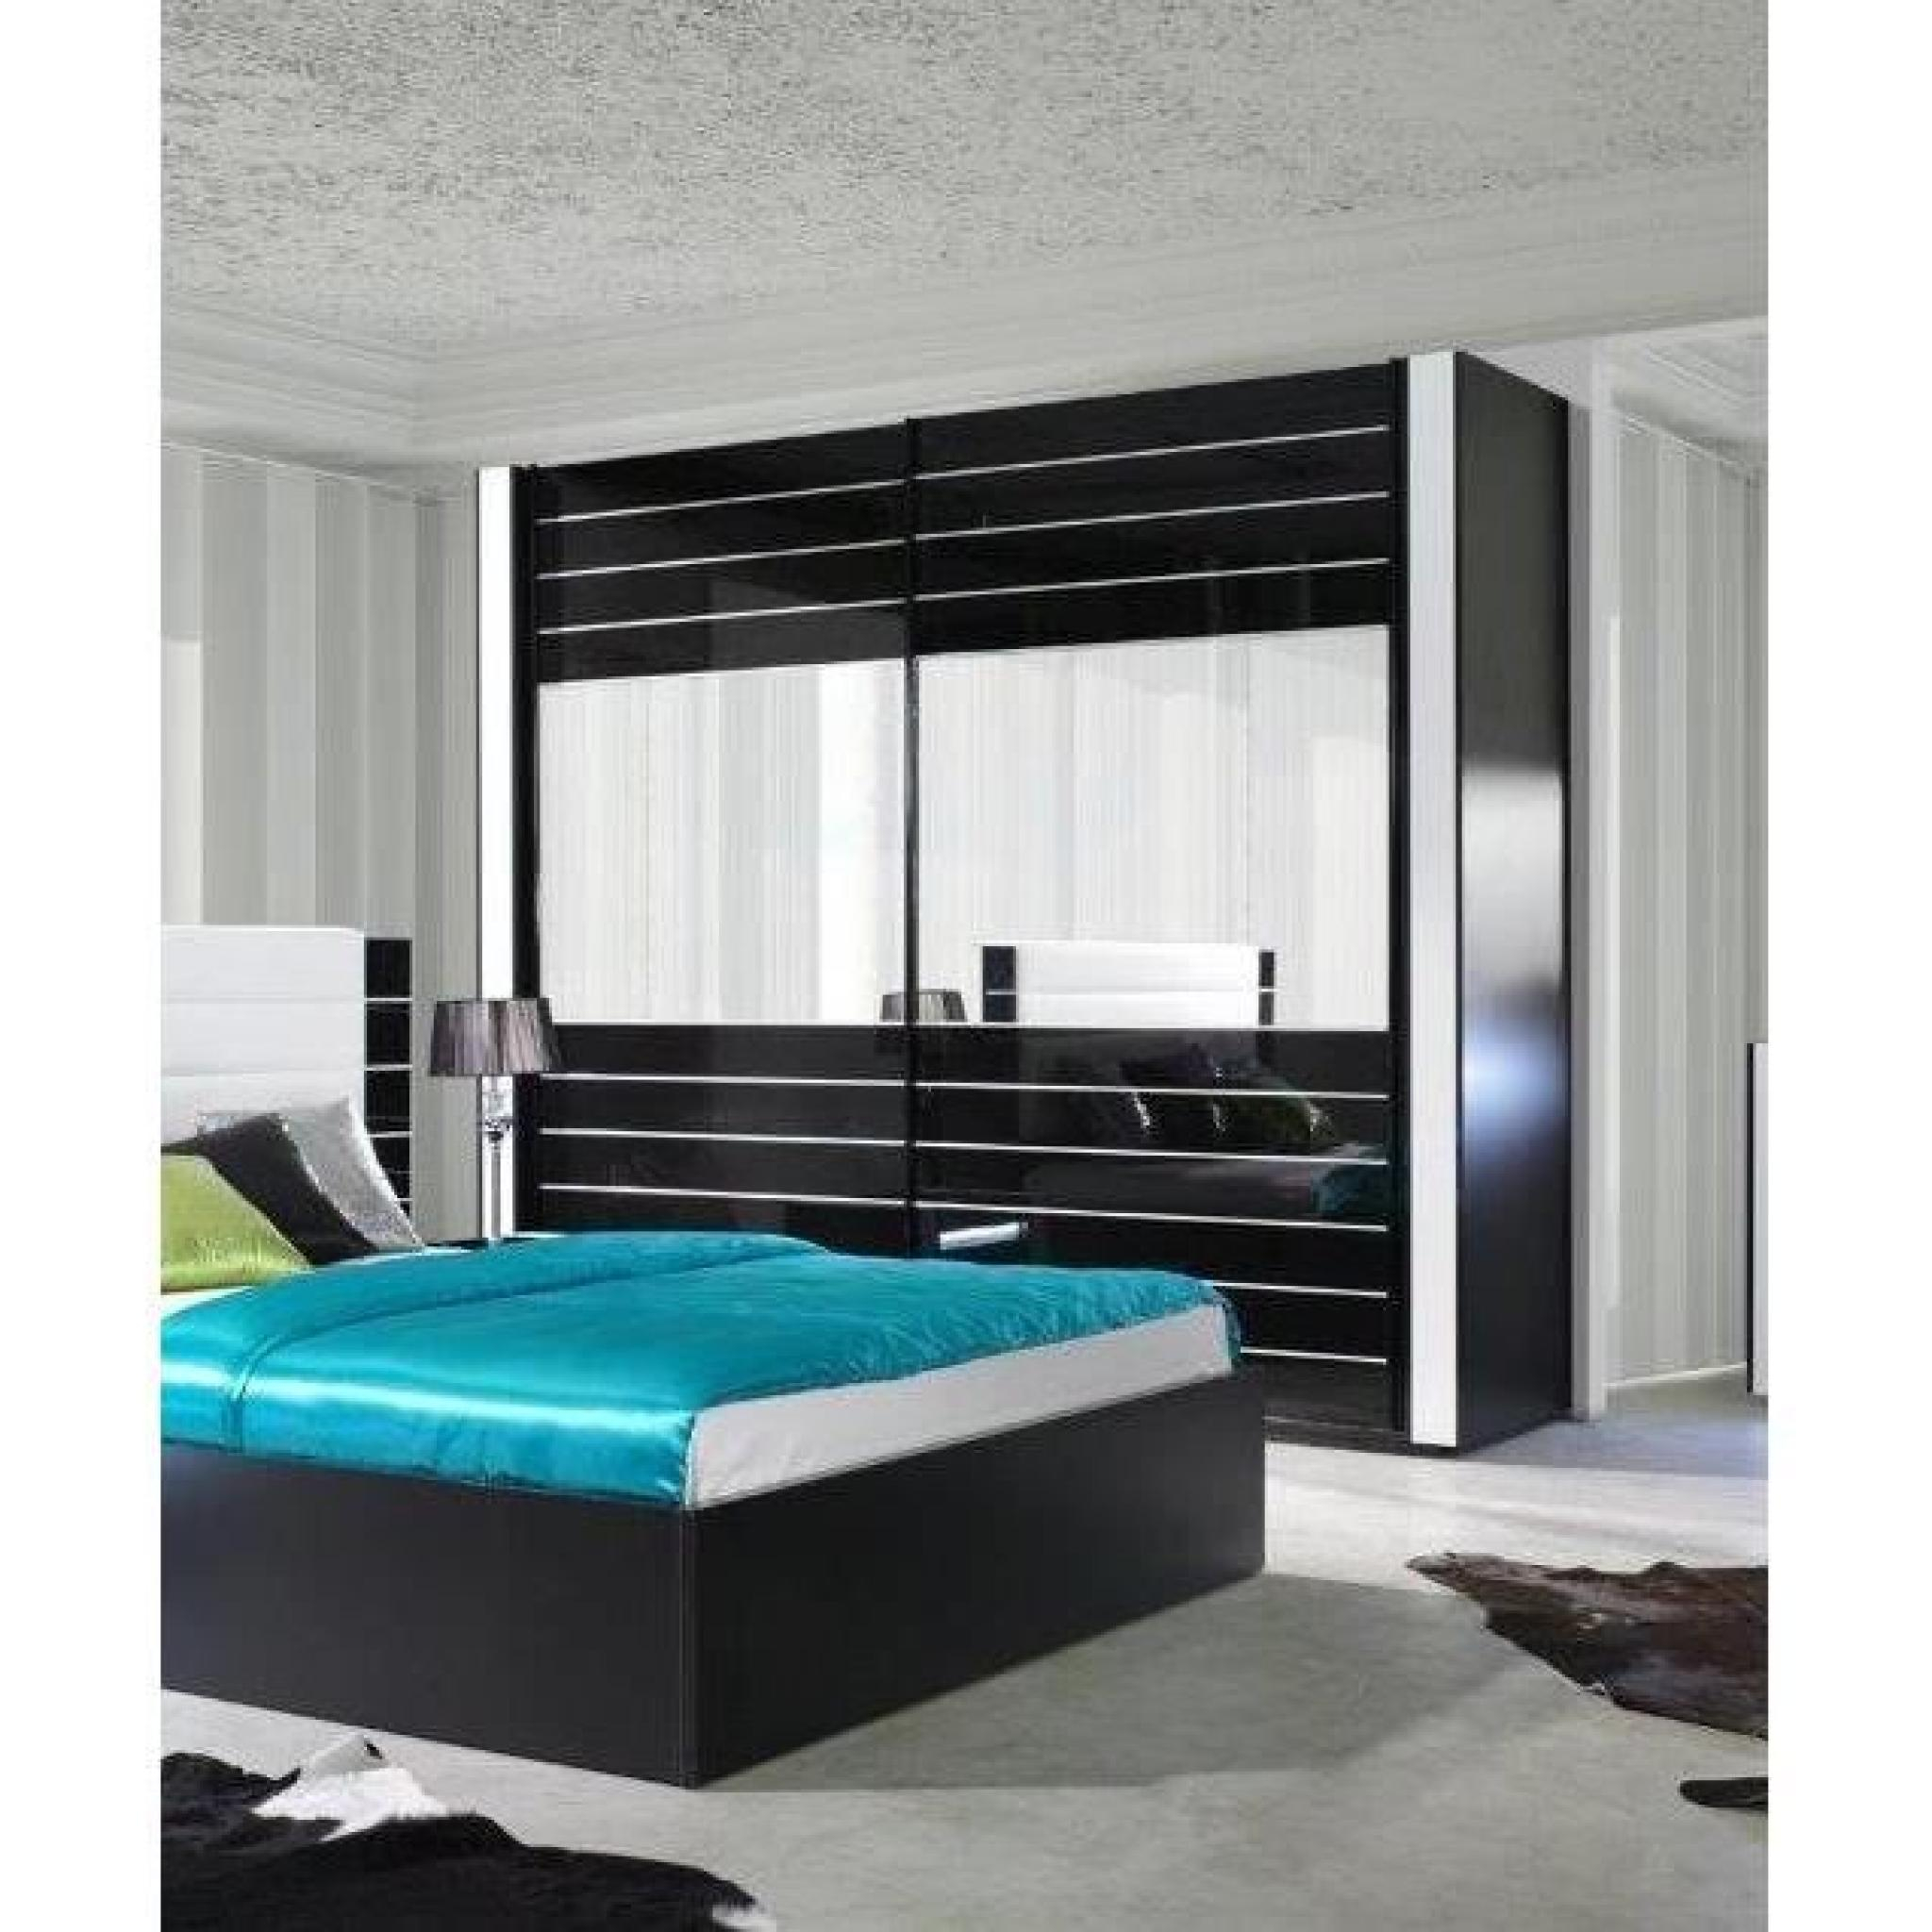 armoire chambre a coucher pas cher id e inspirante pour la conception de la maison. Black Bedroom Furniture Sets. Home Design Ideas